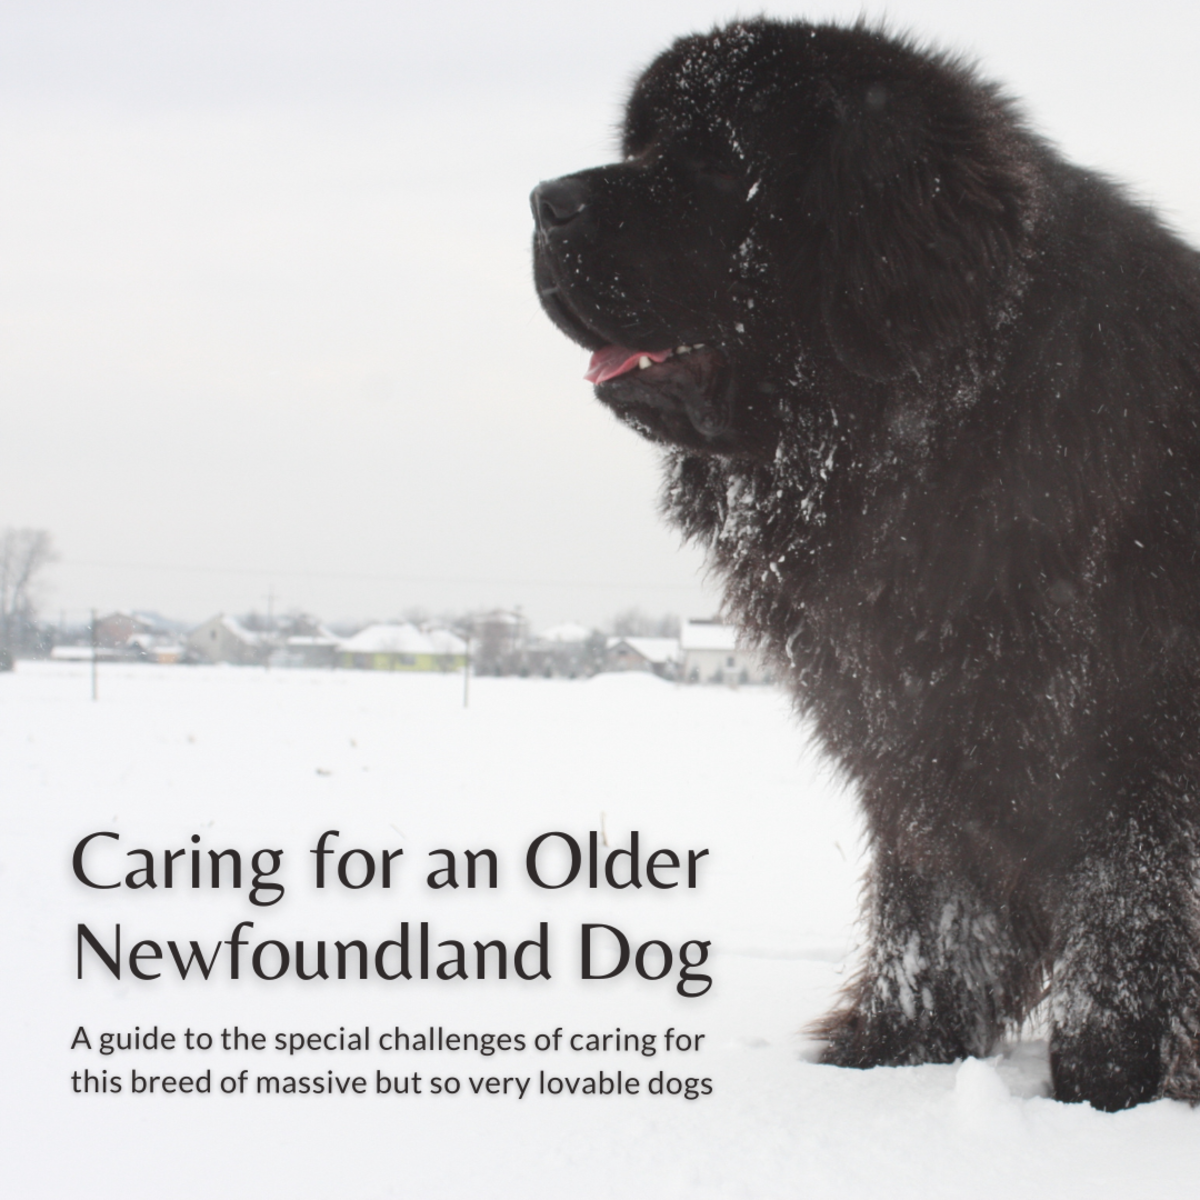 This article will break down how to care for the beloved Newfoundland dogs as they age into their golden years.